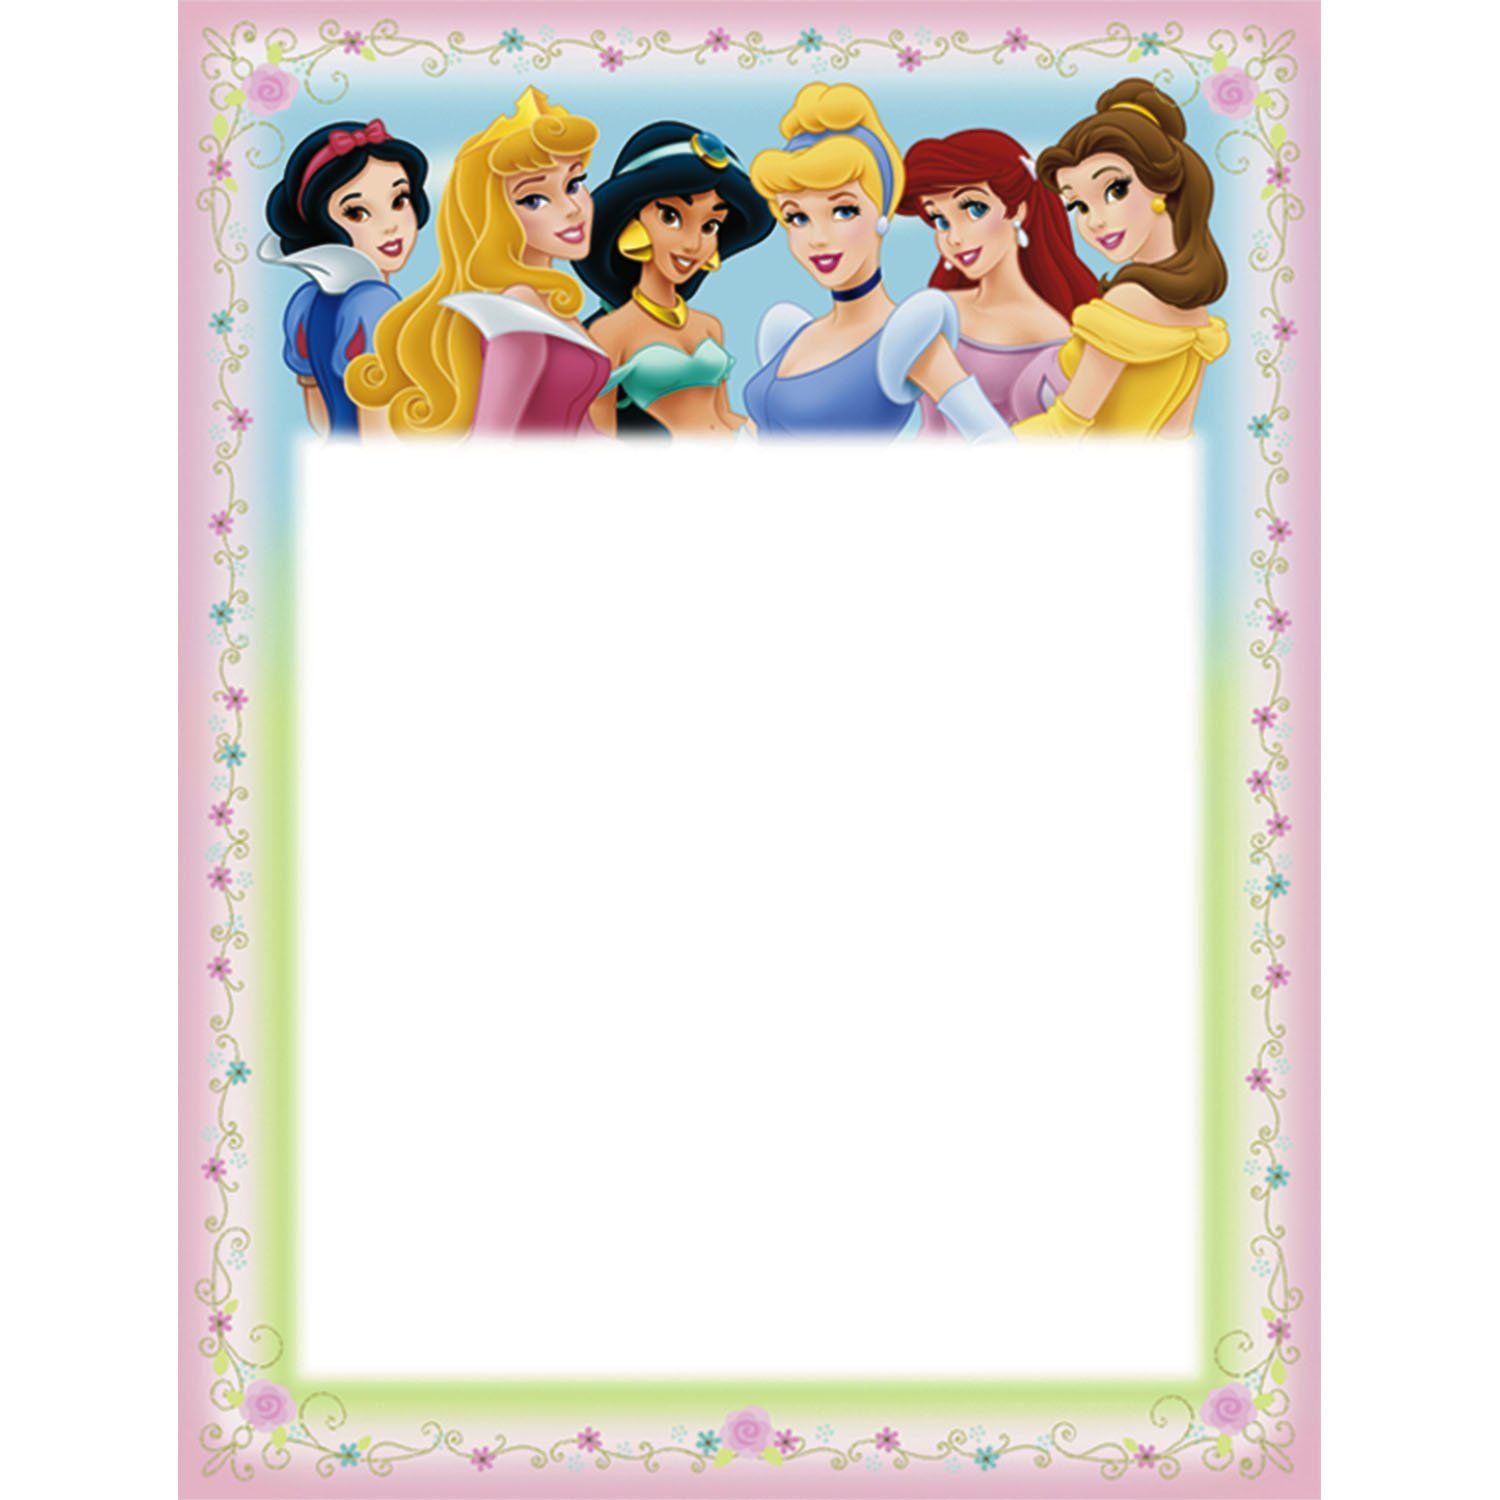 photograph about Disney Birthday Cards Printable known as disney birthday playing cards printable greeting playing cards and